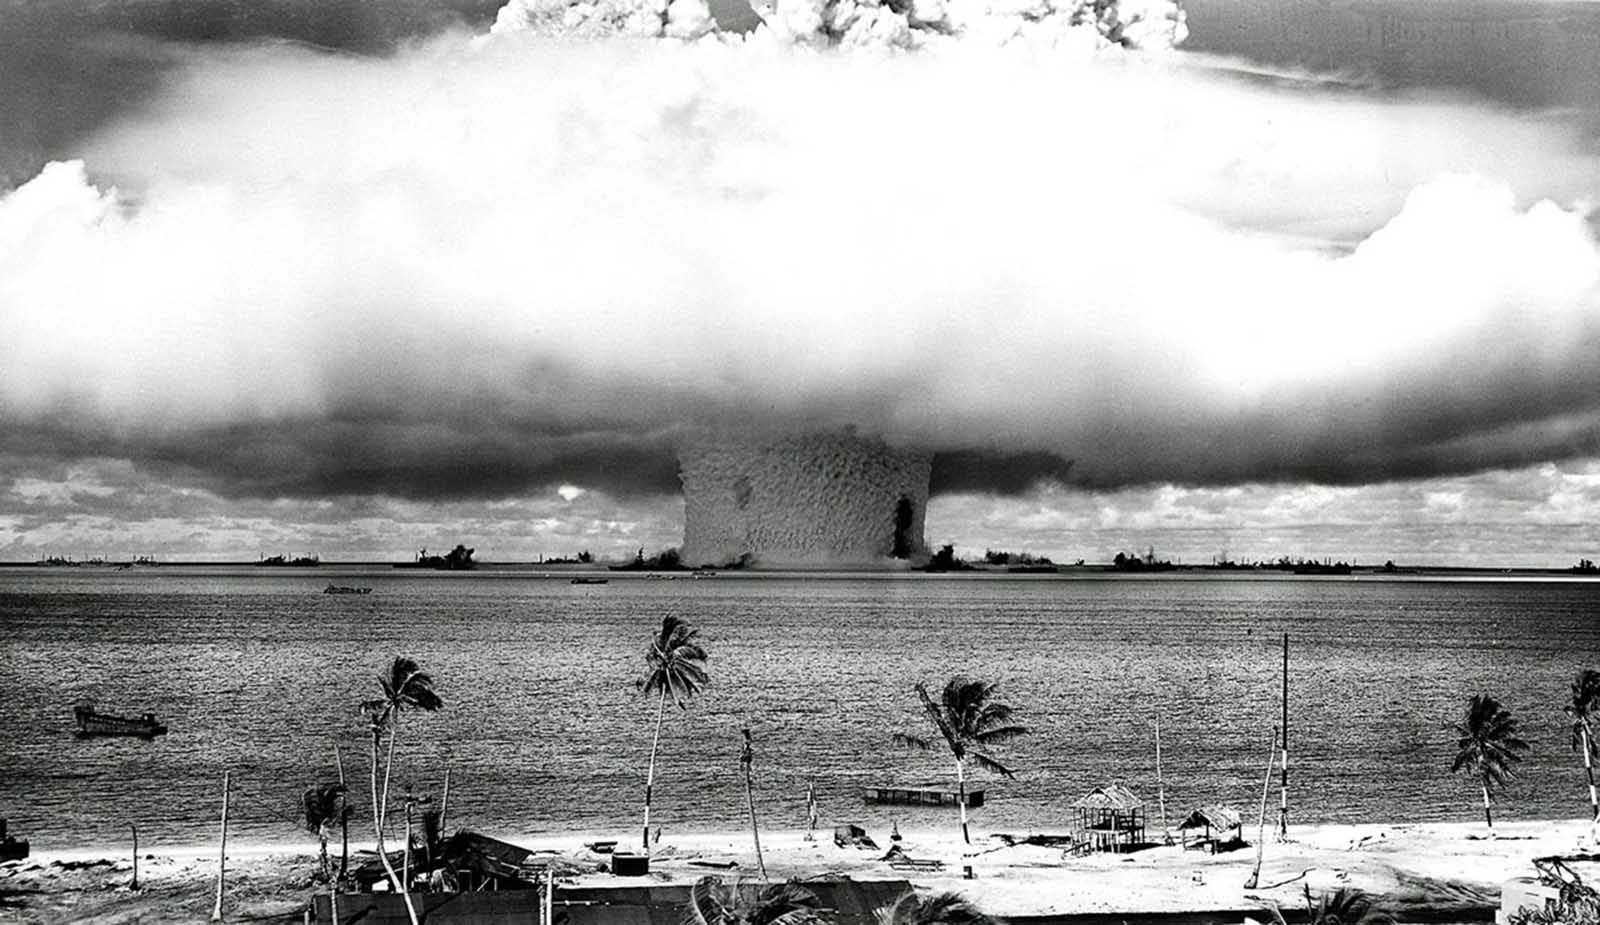 A massive column of water rises from the sea as the U.S. detonates an atomic bomb at Bikini Atoll in the Pacific in the first underwater test of the device, on July 25, 1946. The blast and the enormous wave of water that followed immediately overwhelmed several abandoned ships, which were part of the site's dummy fleet of former warships.